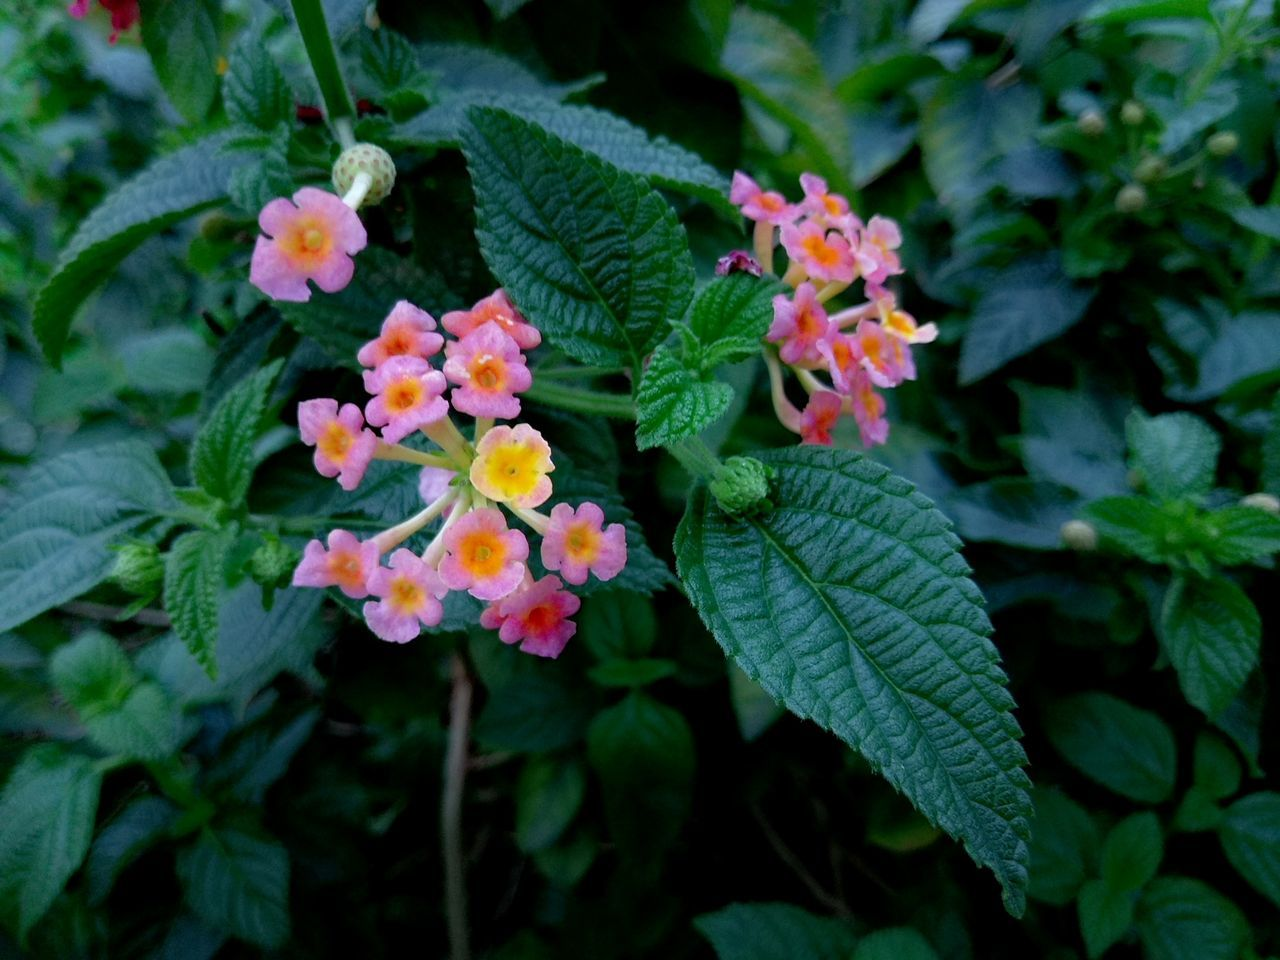 Flower Plant Leaf Nature Growth Beauty In Nature Blooming Green Color No People Fragility Lantana Camara Lantana Freshness Petal Flower Head Outdoors Day Close-up 台灣 花 美麗 植物 風景 馬櫻丹